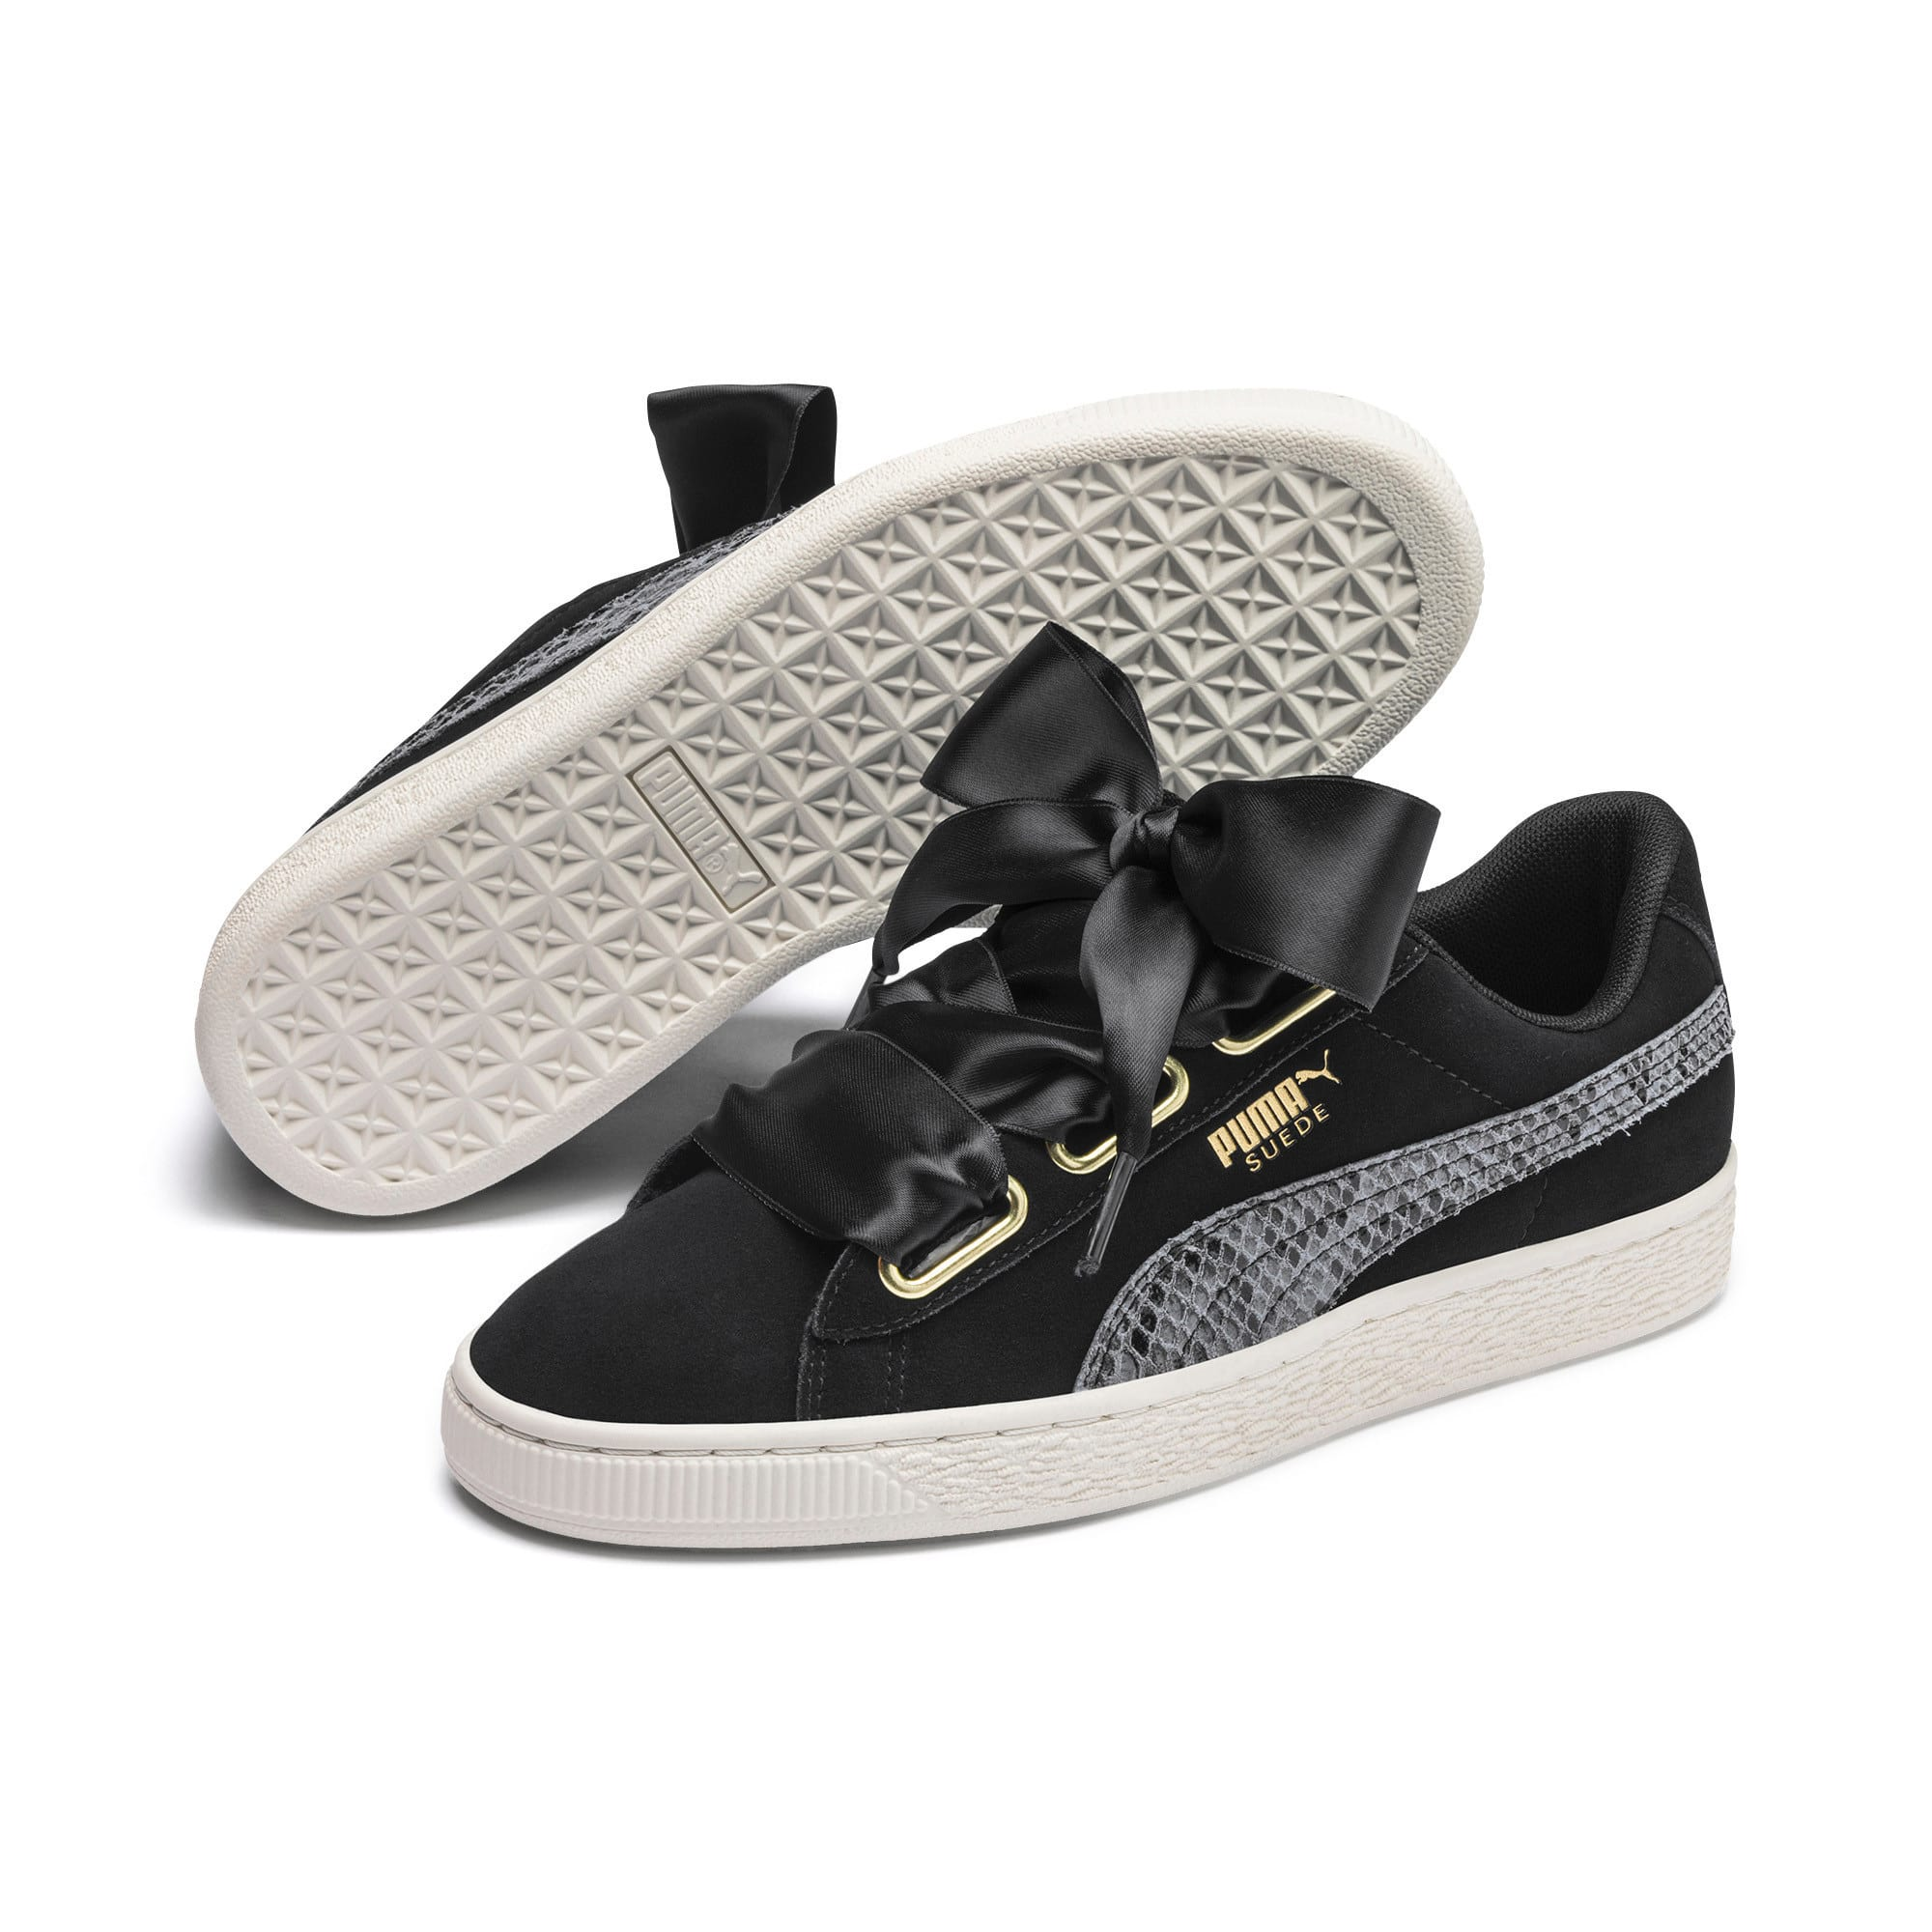 Thumbnail 8 of Suede Heart Snake Lux Women's Trainers, Puma Black-Puma Team Gold, medium-IND